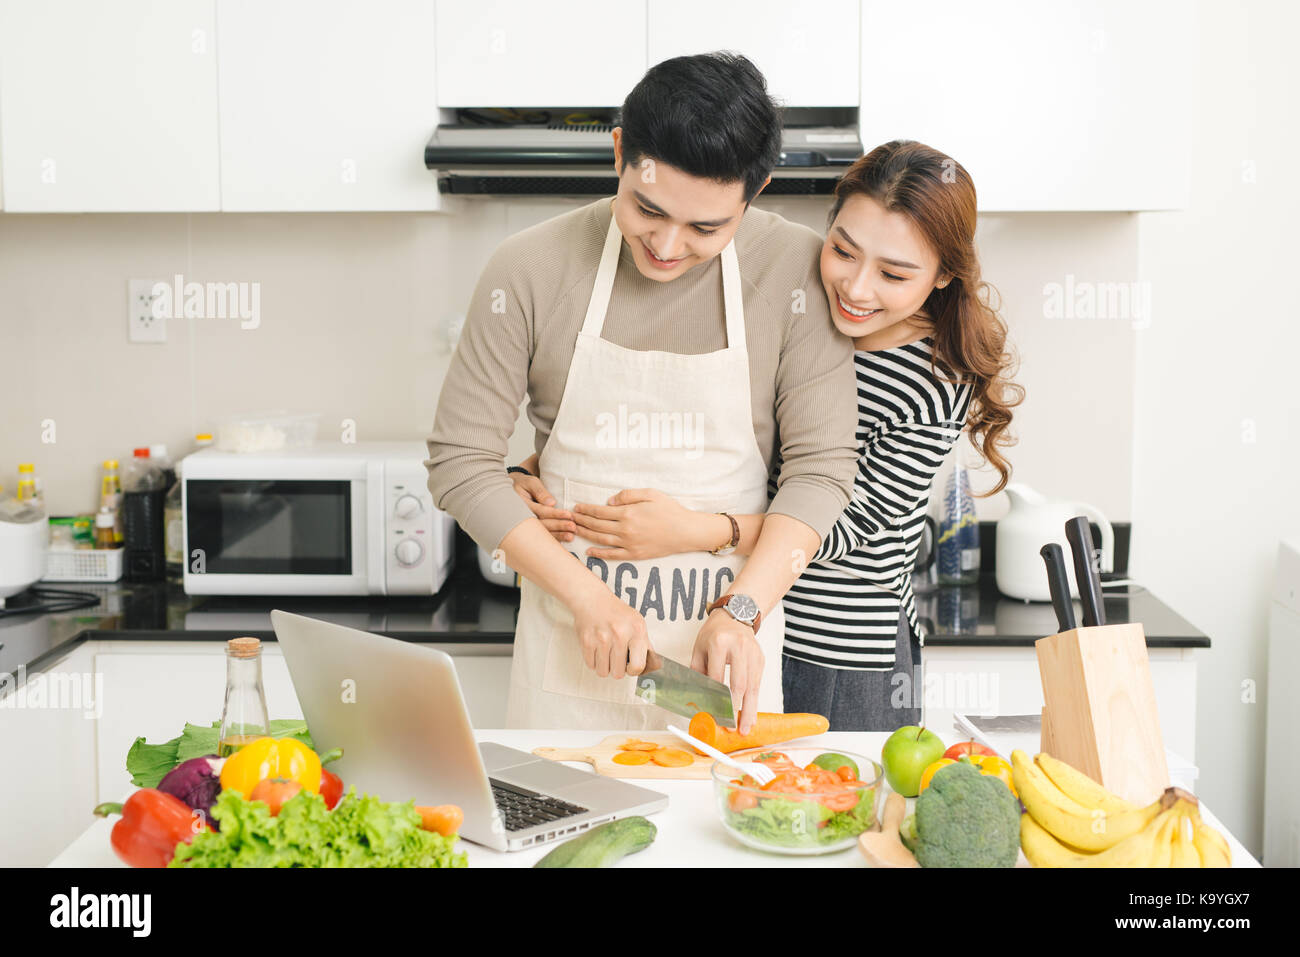 Happy asian couple watching tv show on the laptop and cooking dinner - Stock Image